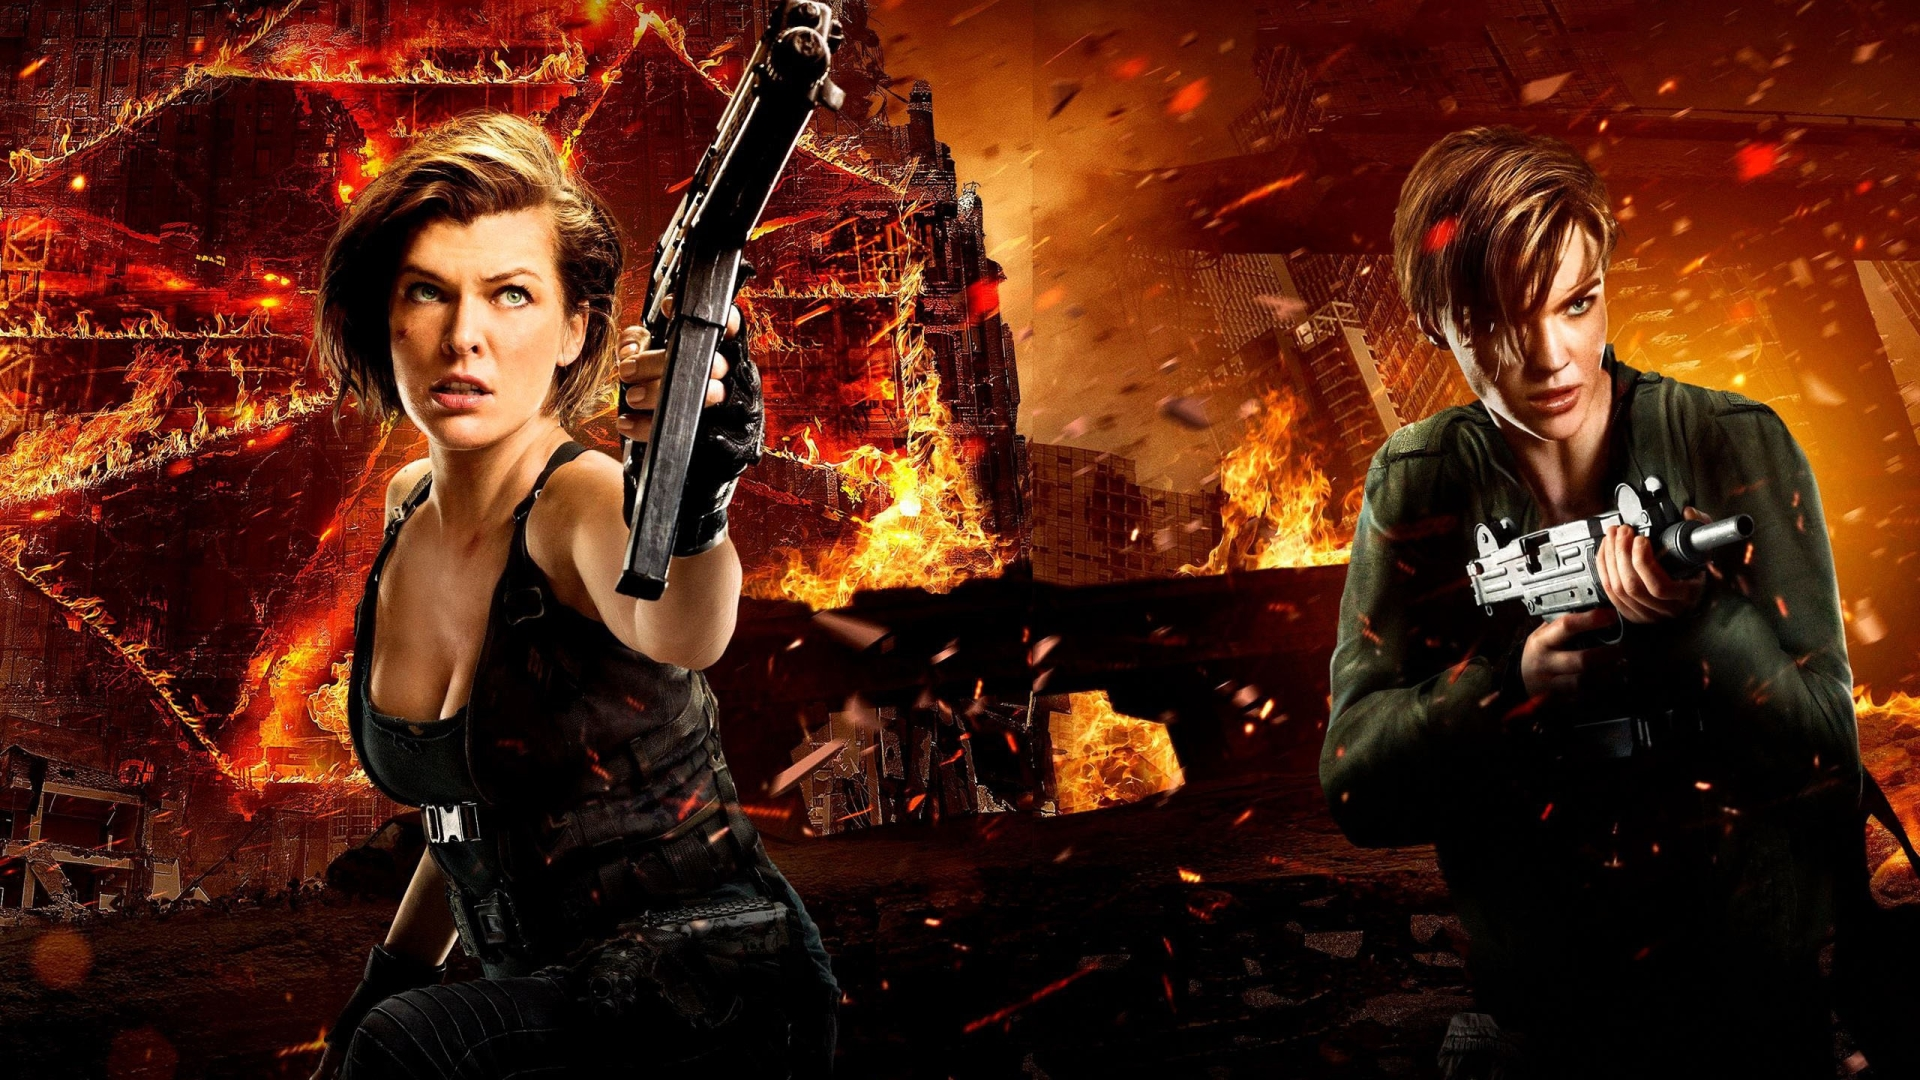 Ruby Rose Resident Evil The Final Chapter Wallpaper 11863: Fondos De Pantalla De Resident Evil : The Final Chapter